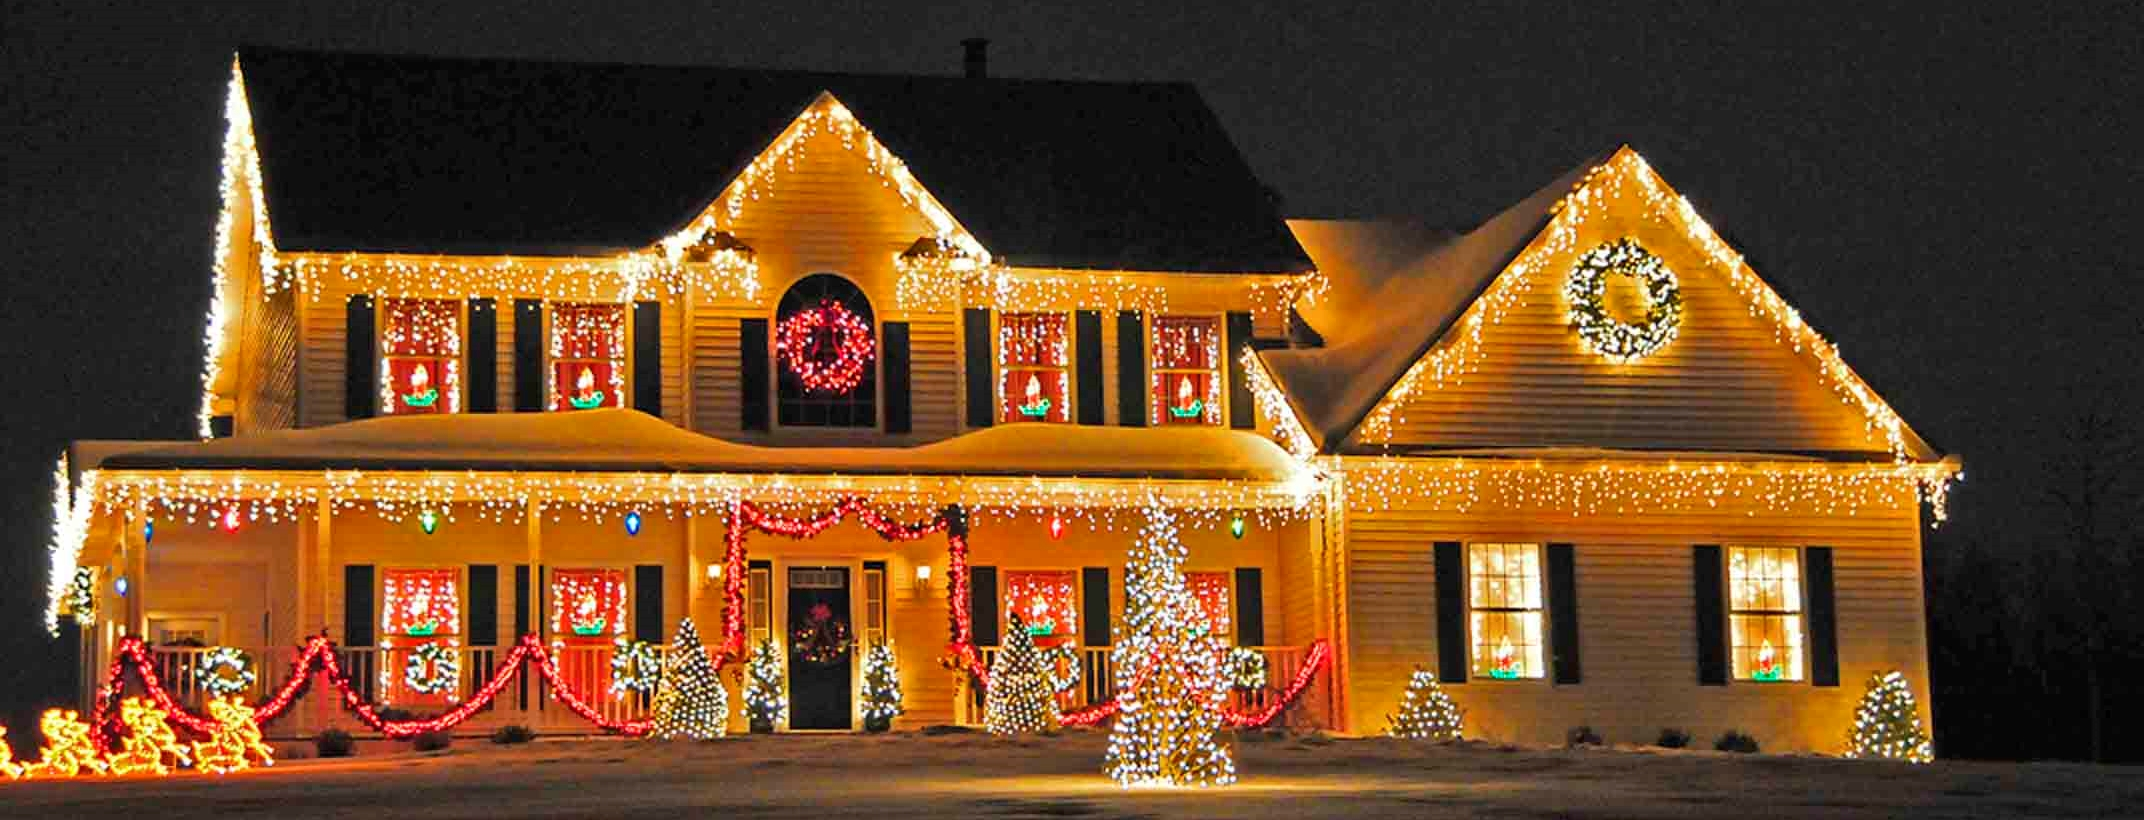 Choosing a Professional Christmas Lights Installation Service Springfield MO